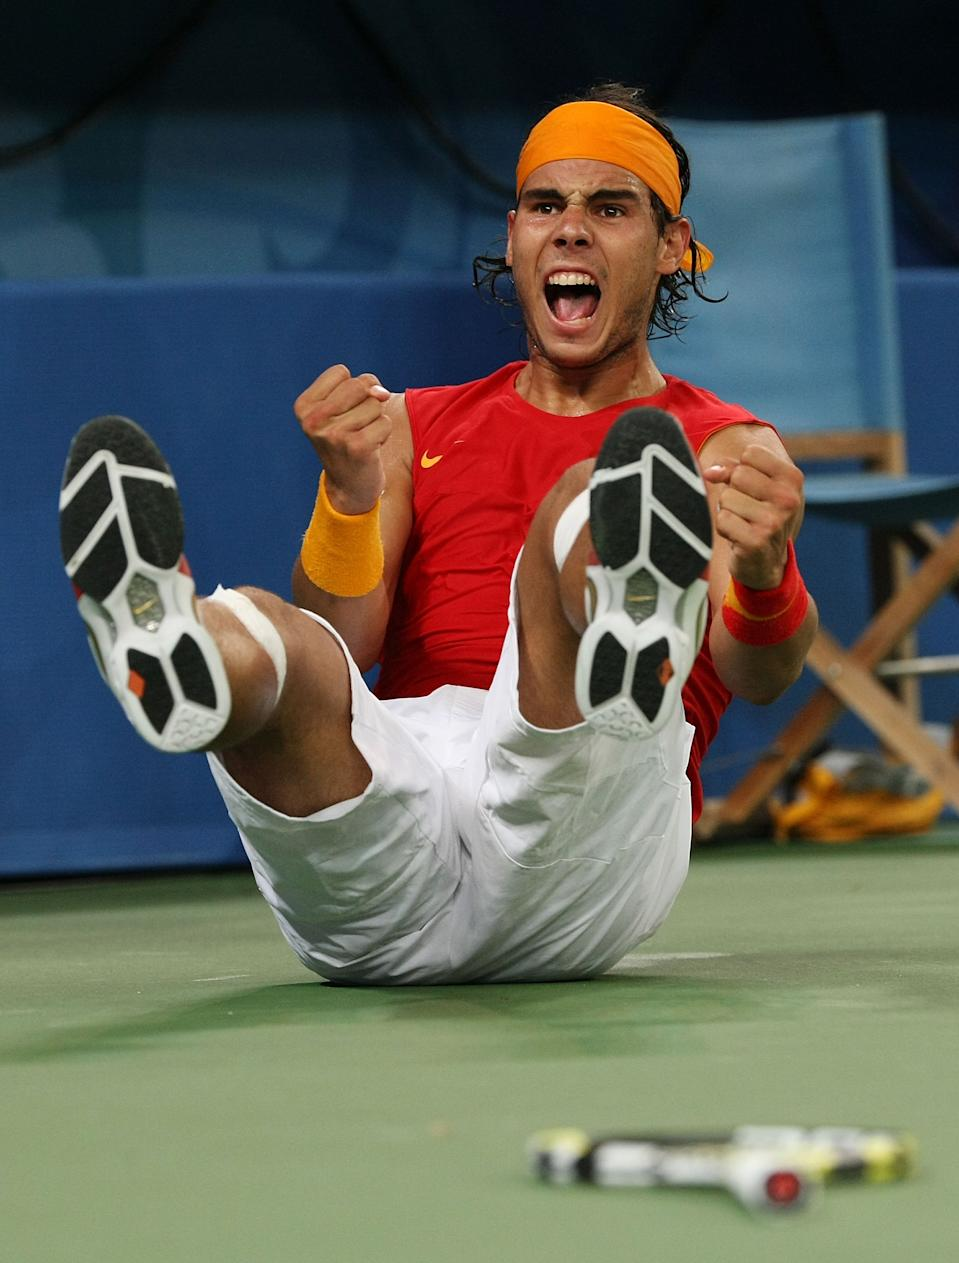 BEIJING - AUGUST 15: Rafael Nadal of Spain celebrates after defeating Novak Djokovic of Serbia in the men's semifinal tennis match at the Olympic Green Tennis Center on Day 7 of the Beijing 2008 Olympic Games on August 15, 2008 in Beijing, China. (Photo by Nick Laham/Getty Images)